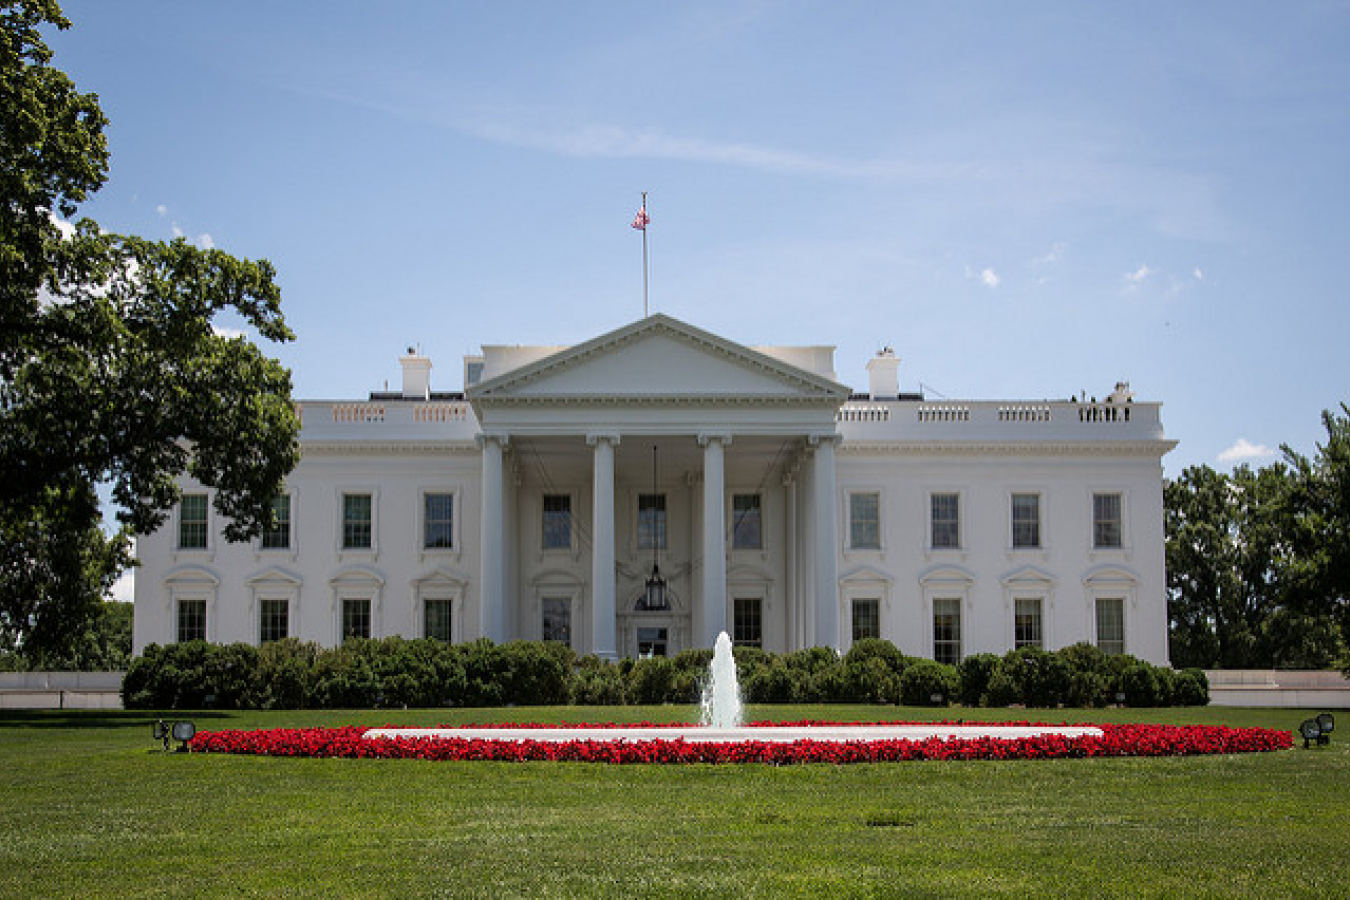 The White House, USA